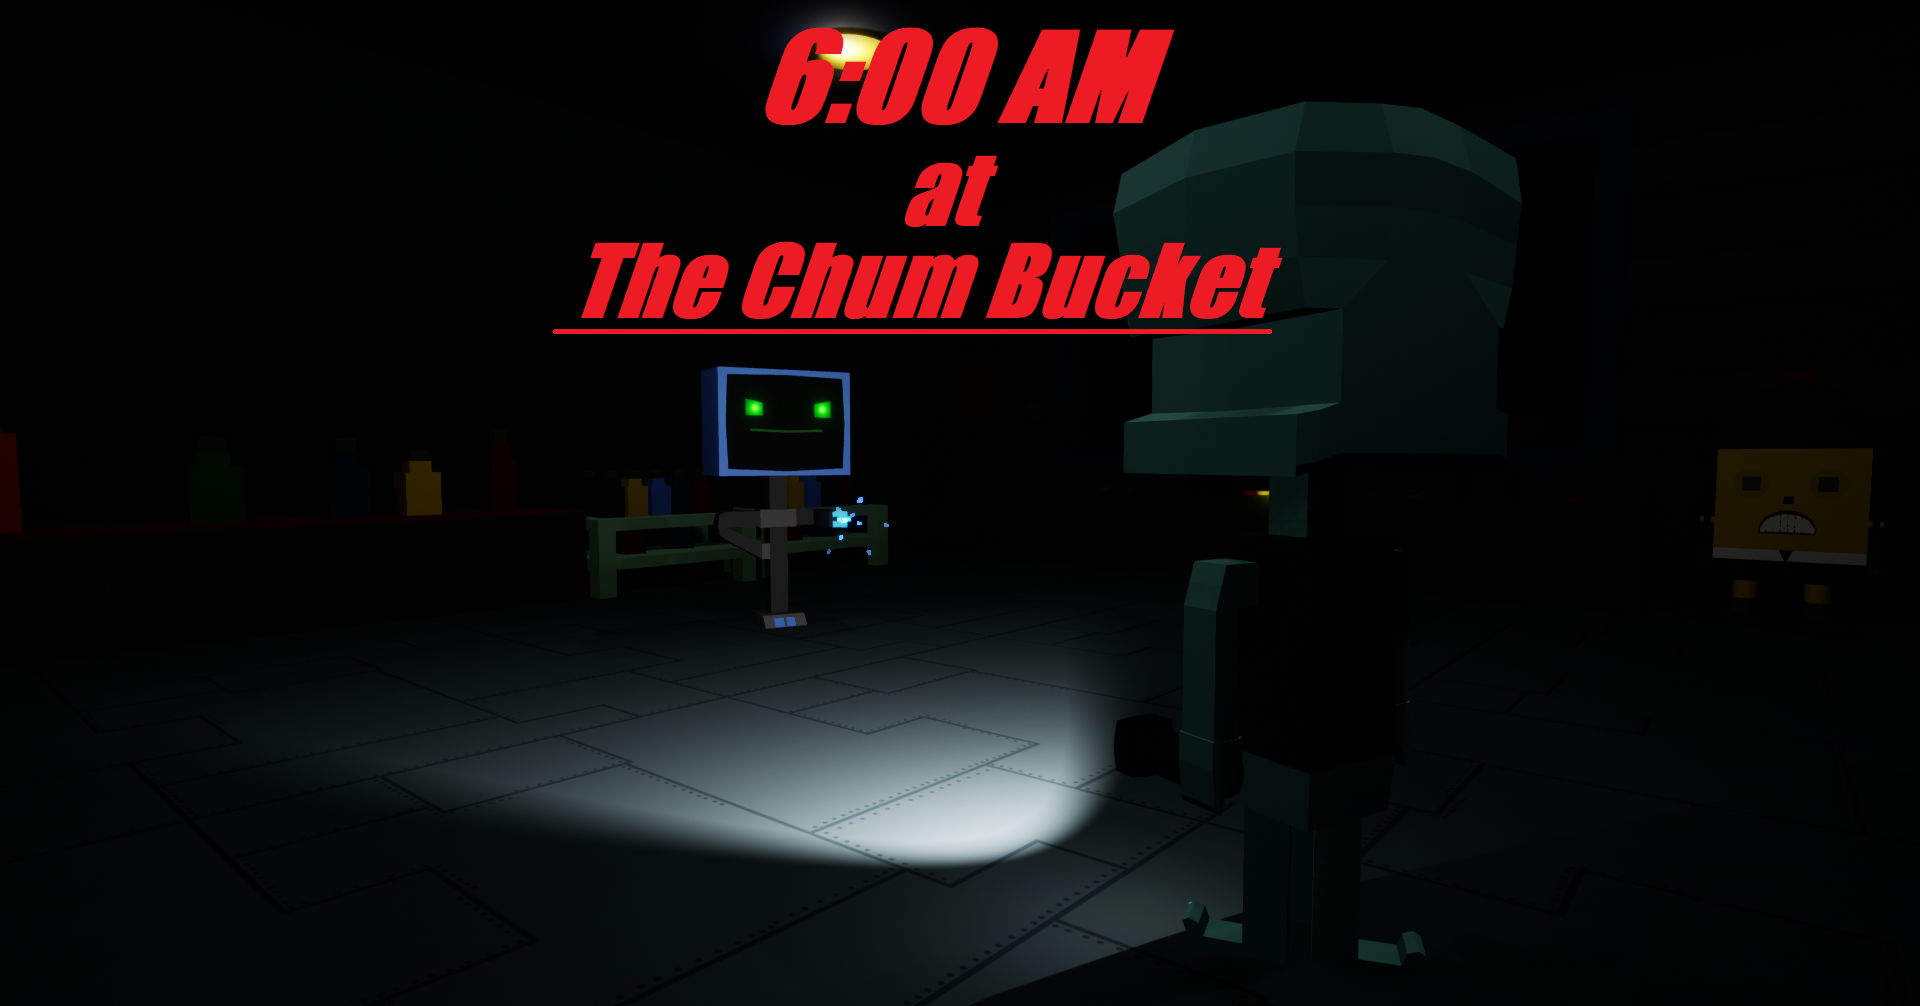 6 AM at The Chum Bucket by Dave Microwaves Games